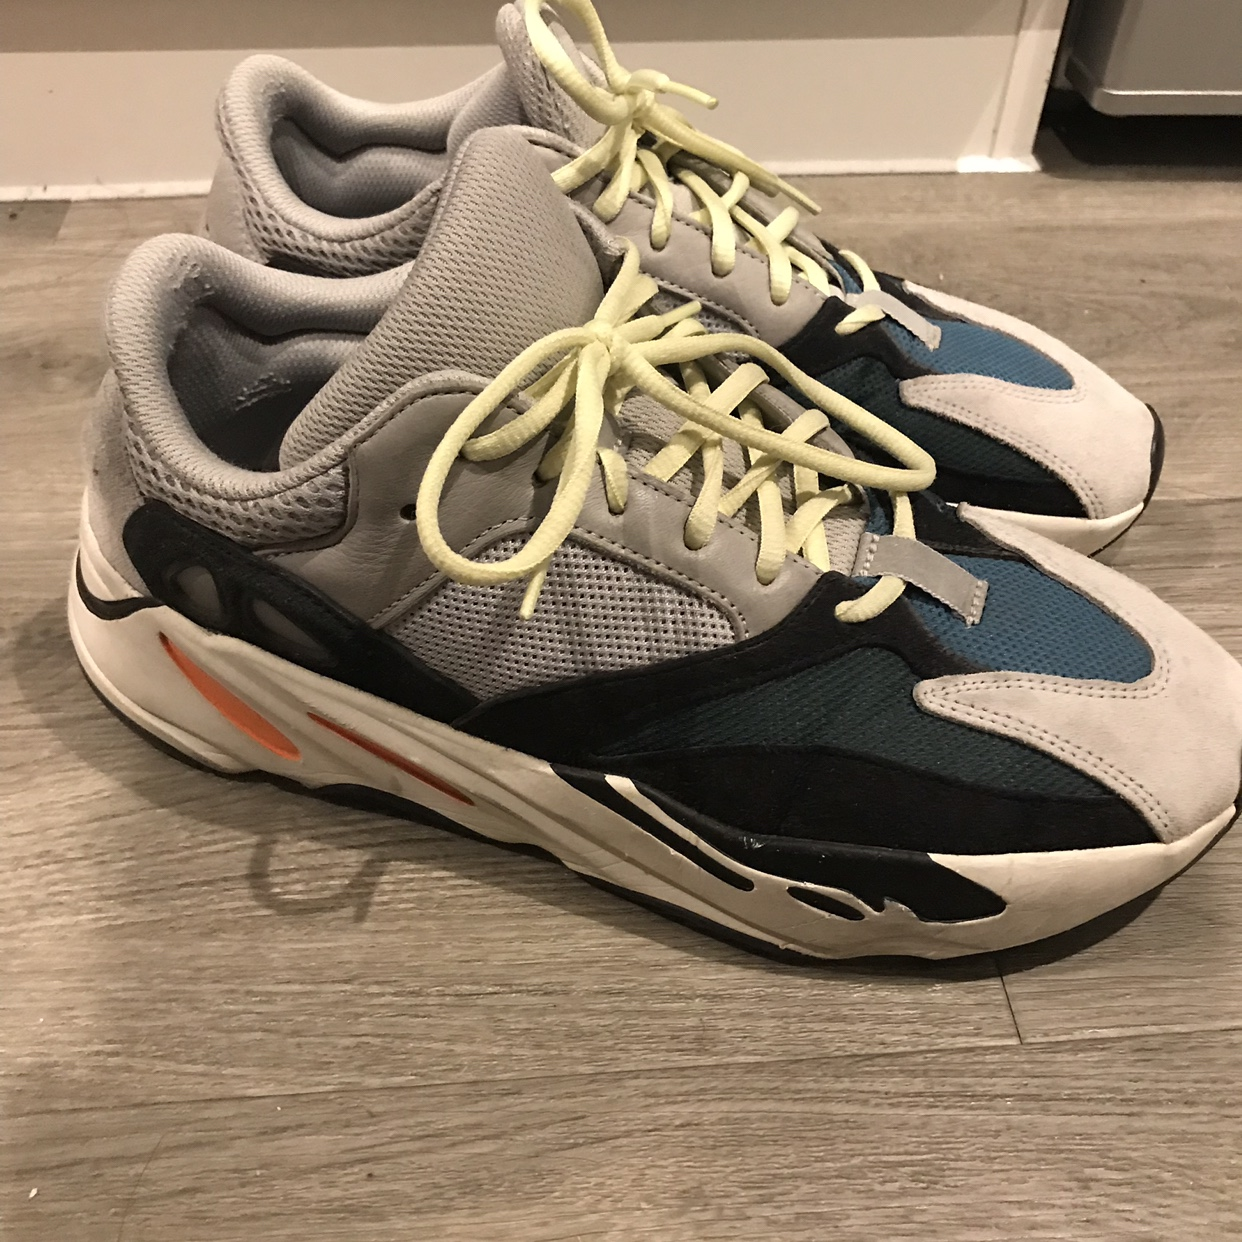 Yeezy Wave Runner 700 Used Bought from